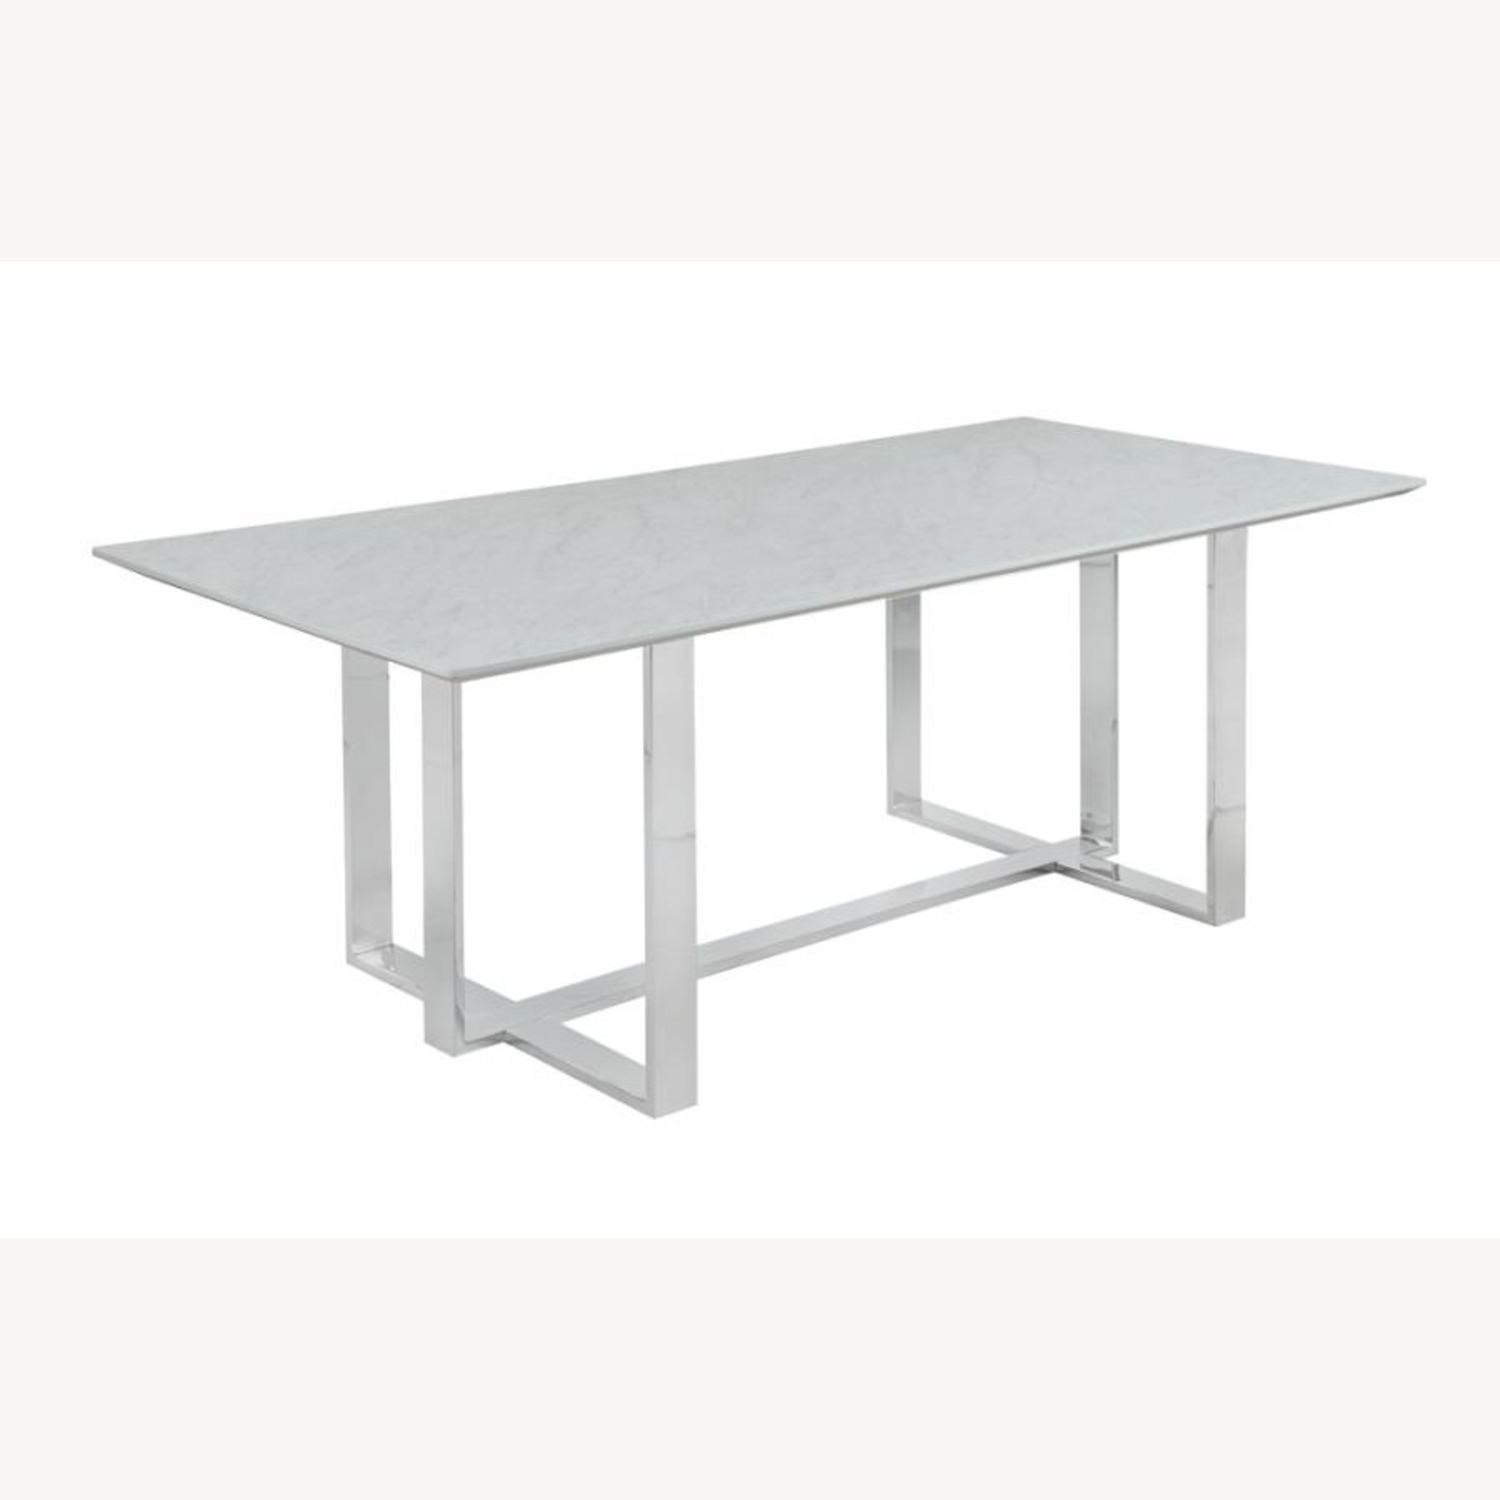 Dining Table In White Thick Tempered Glass Finish - image-0